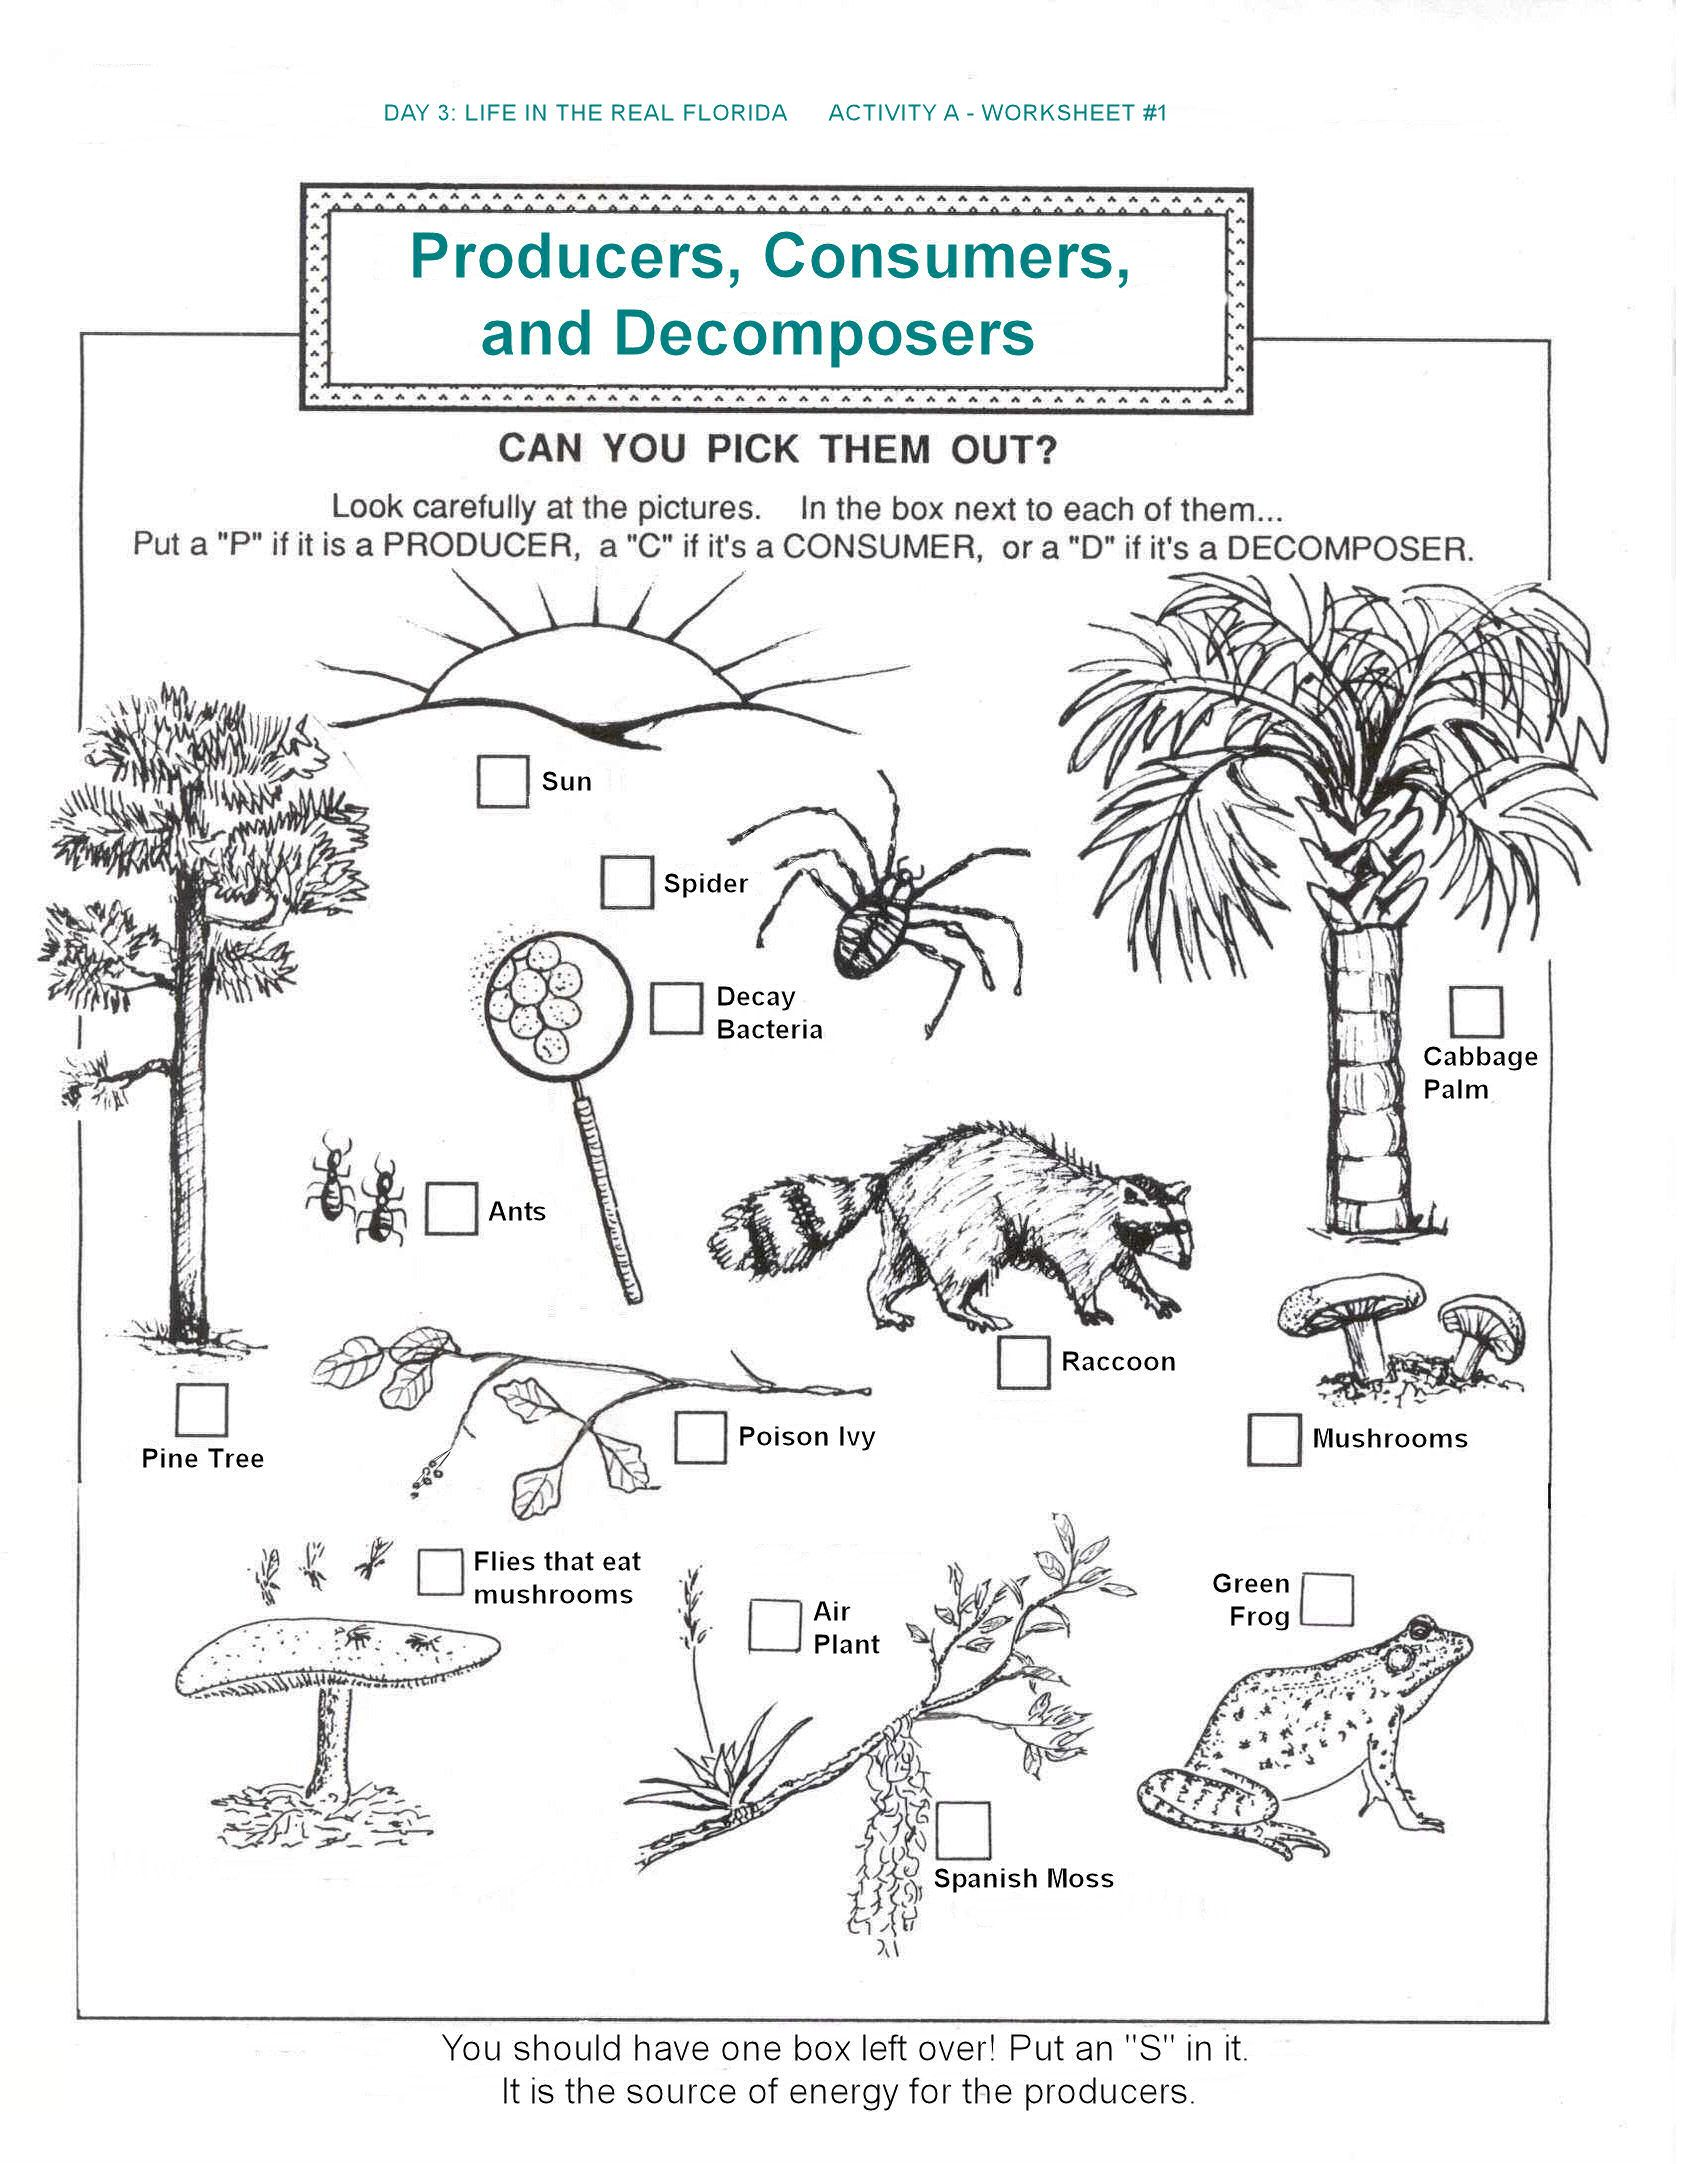 Decomposers worksheets for kids archbold biological station ecology robcynllc Gallery